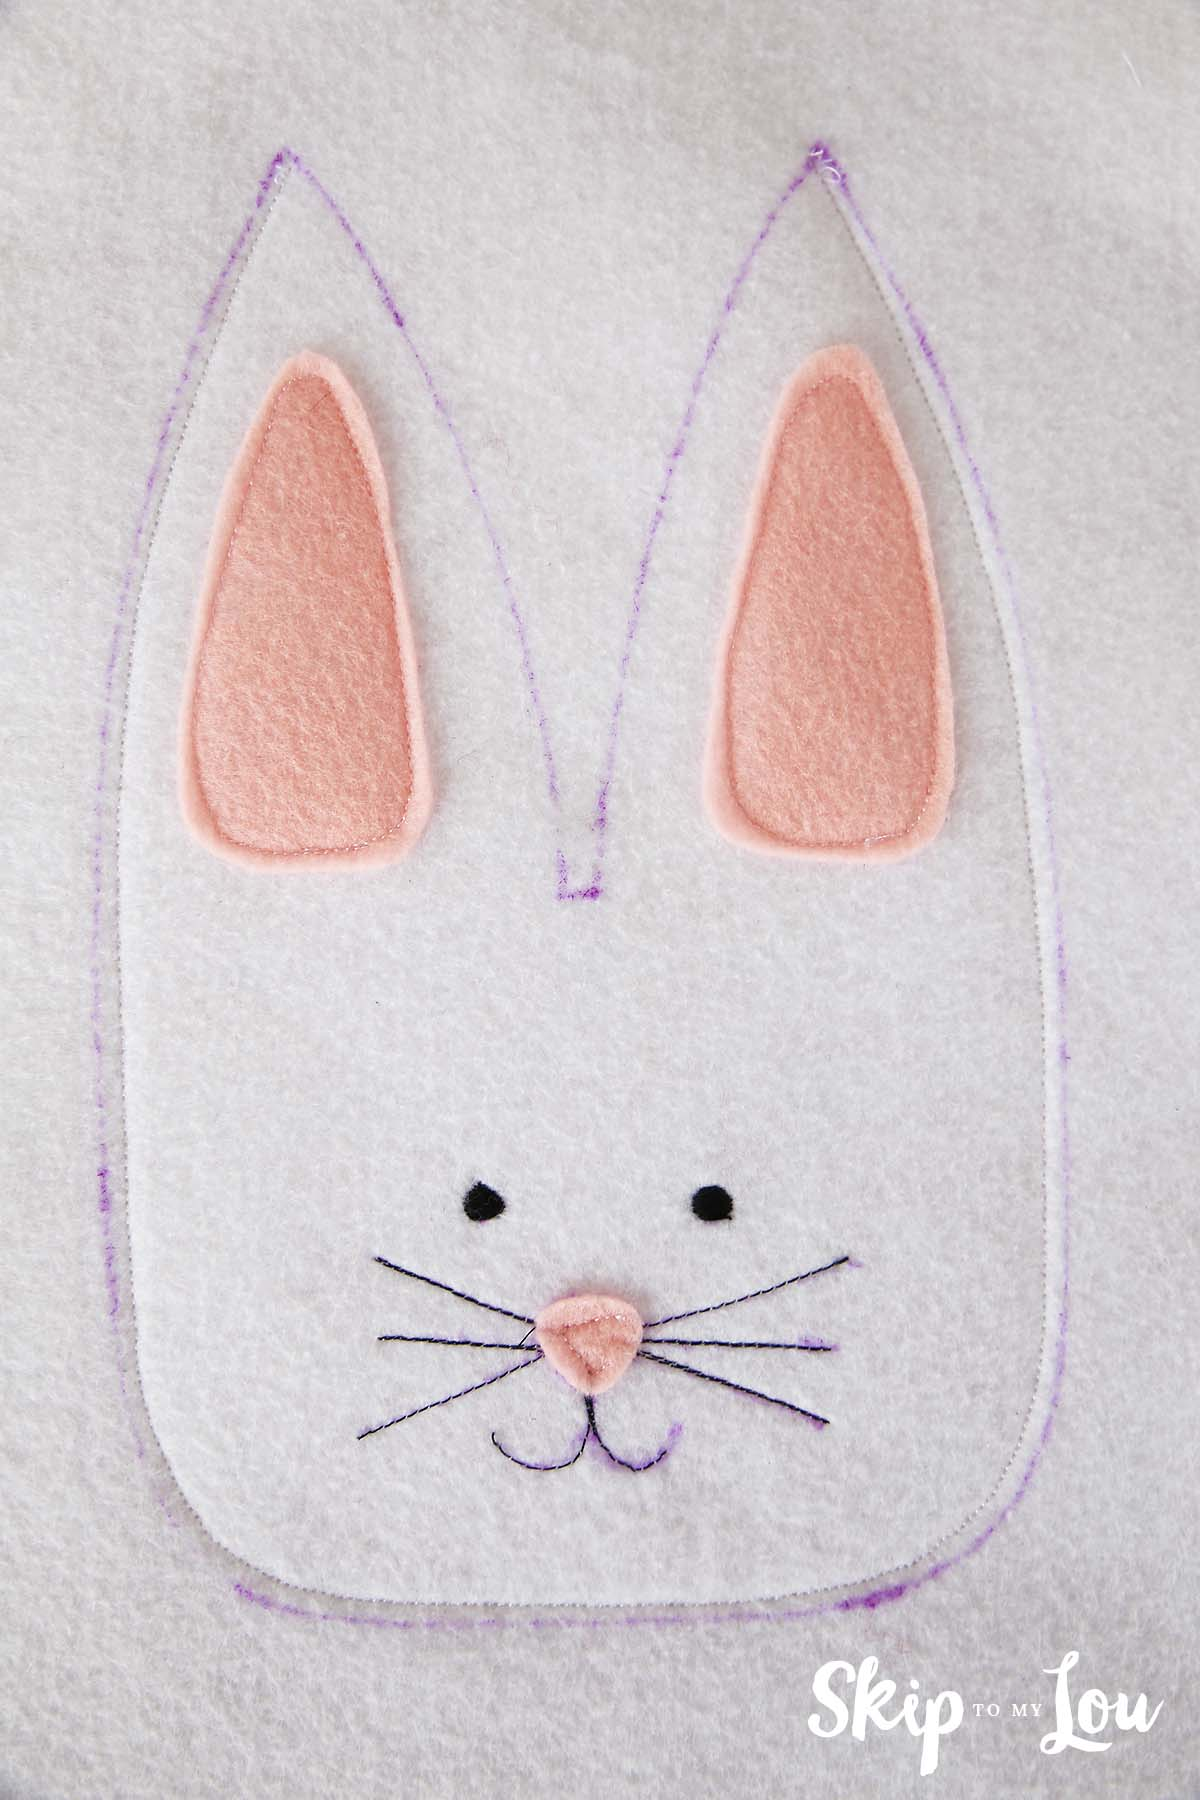 white felt sheet with bunny features sewn to a second layer of felt; the bunny head is sewn within the boundaries of the outline from the top of one ear going down around the face to the top of the second ear; the crevice between the ears is not sewn to leave an opening for the treats